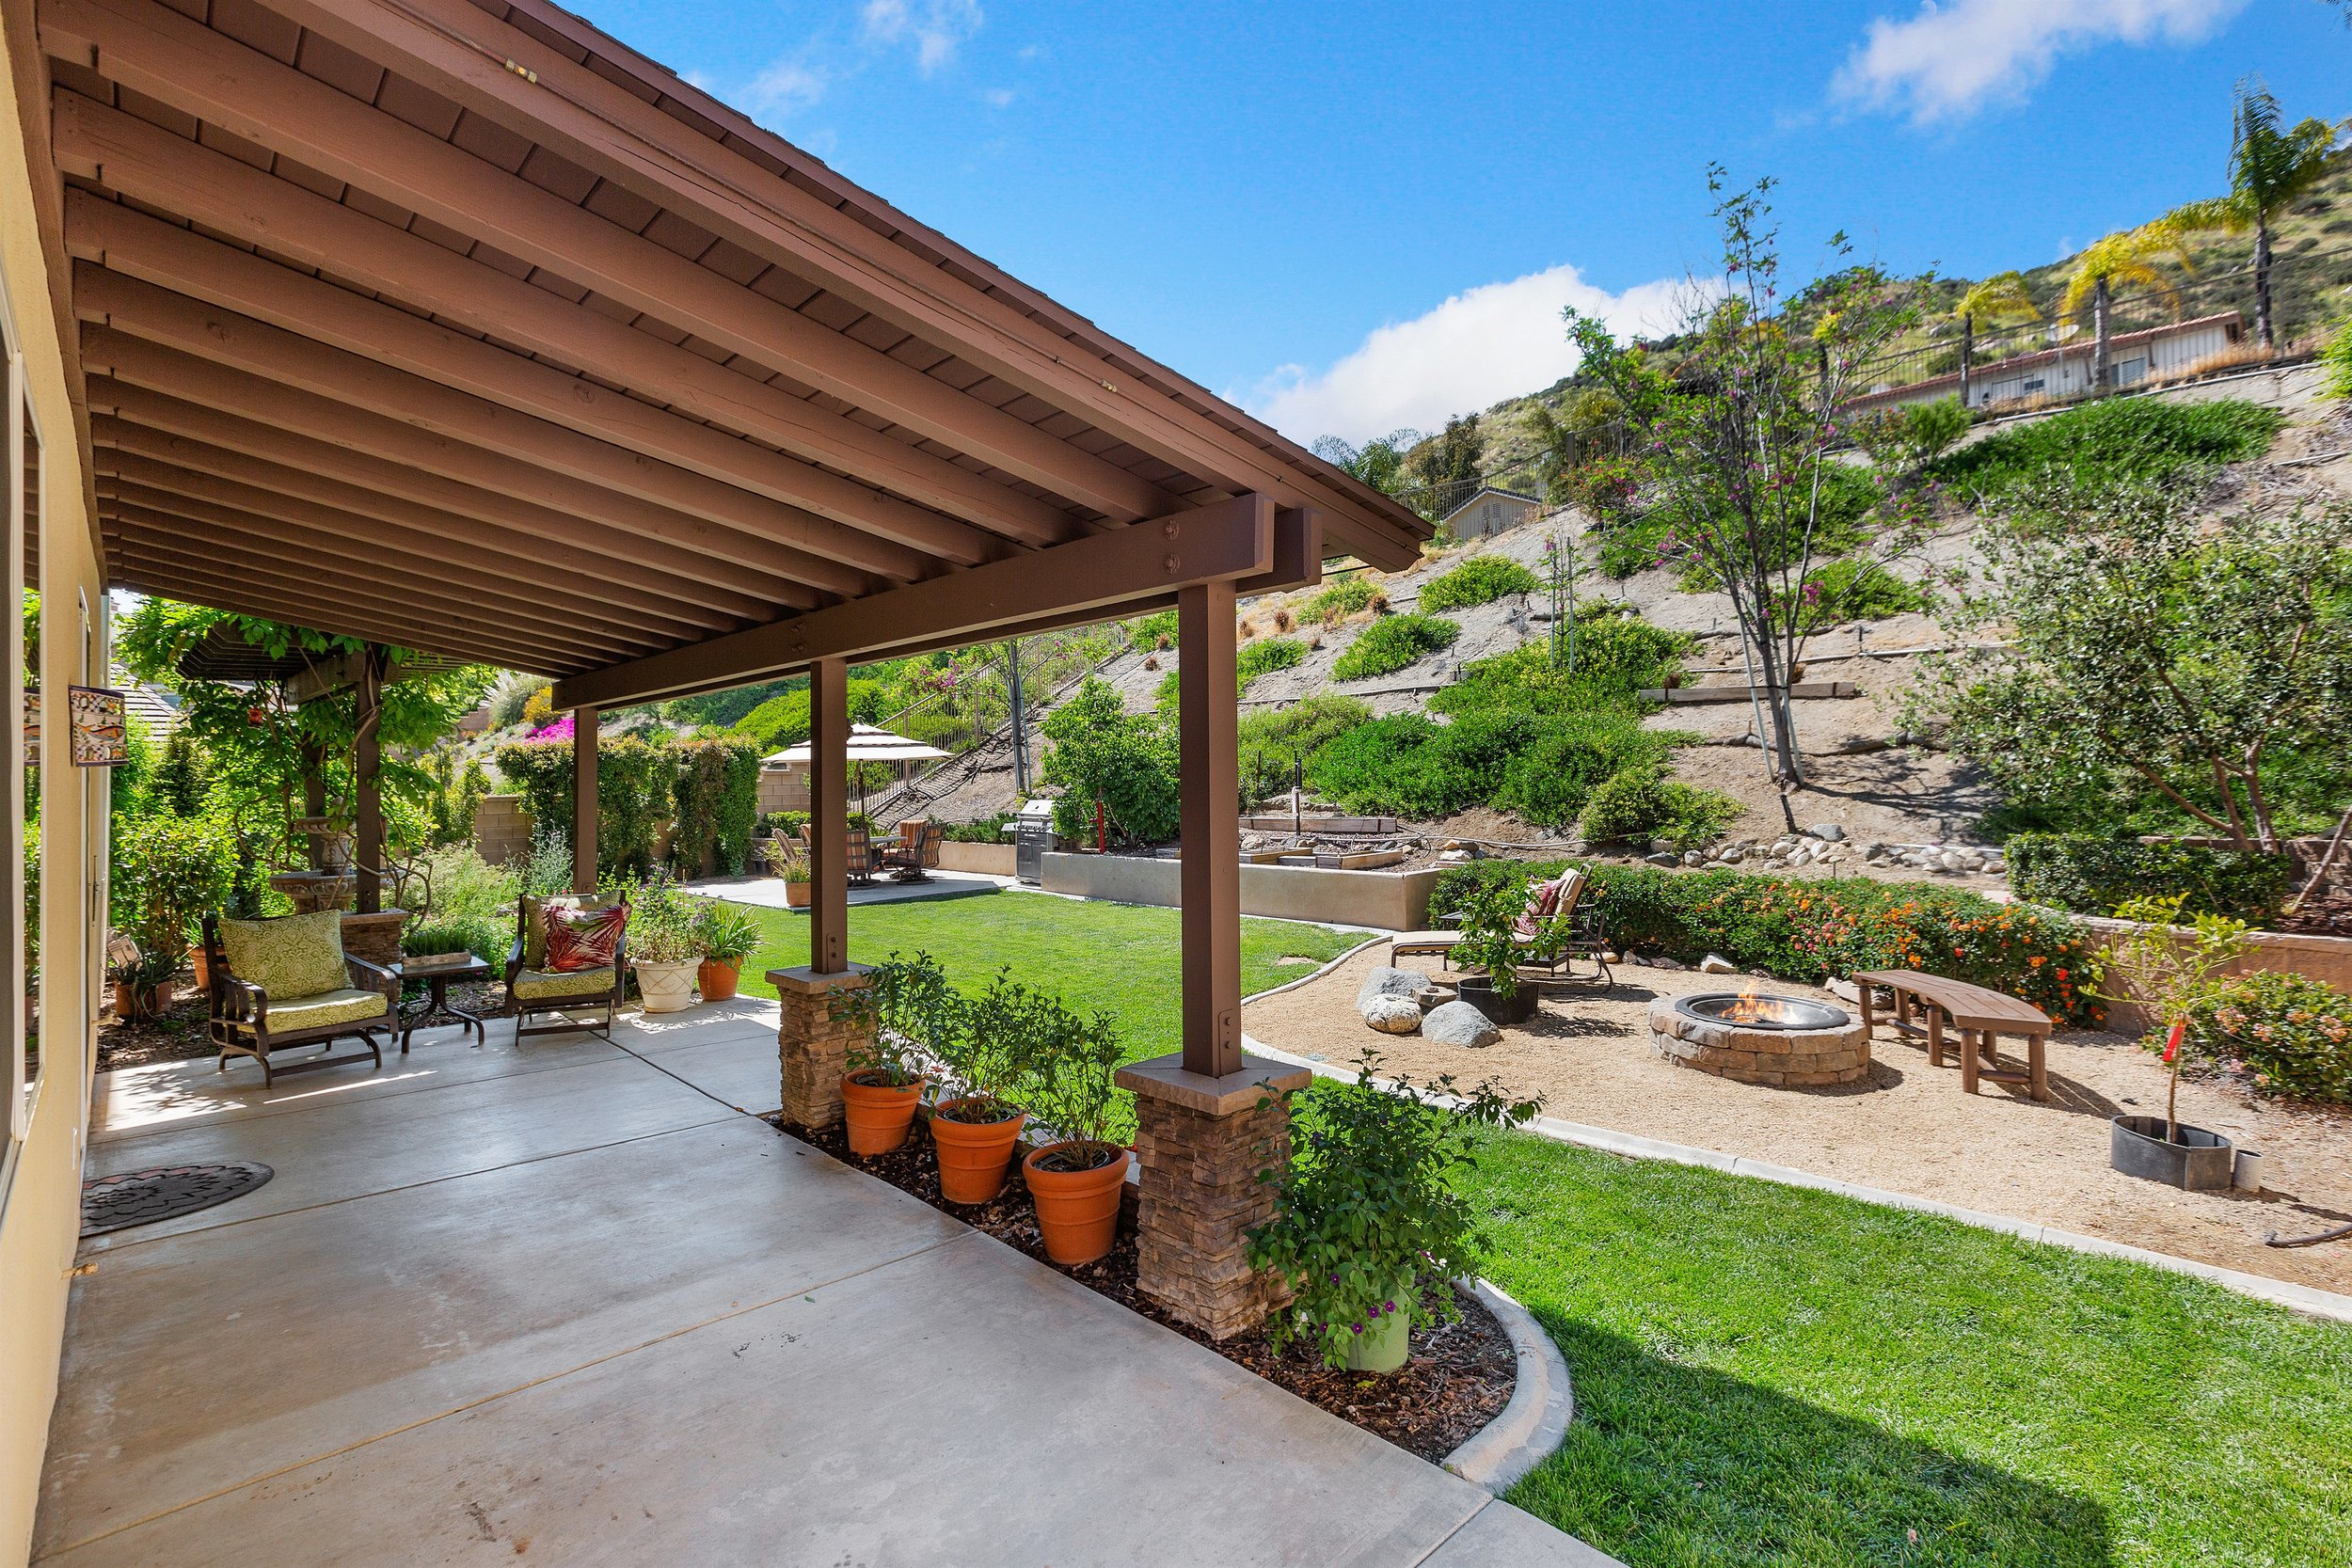 033_Covered Patio.jpg